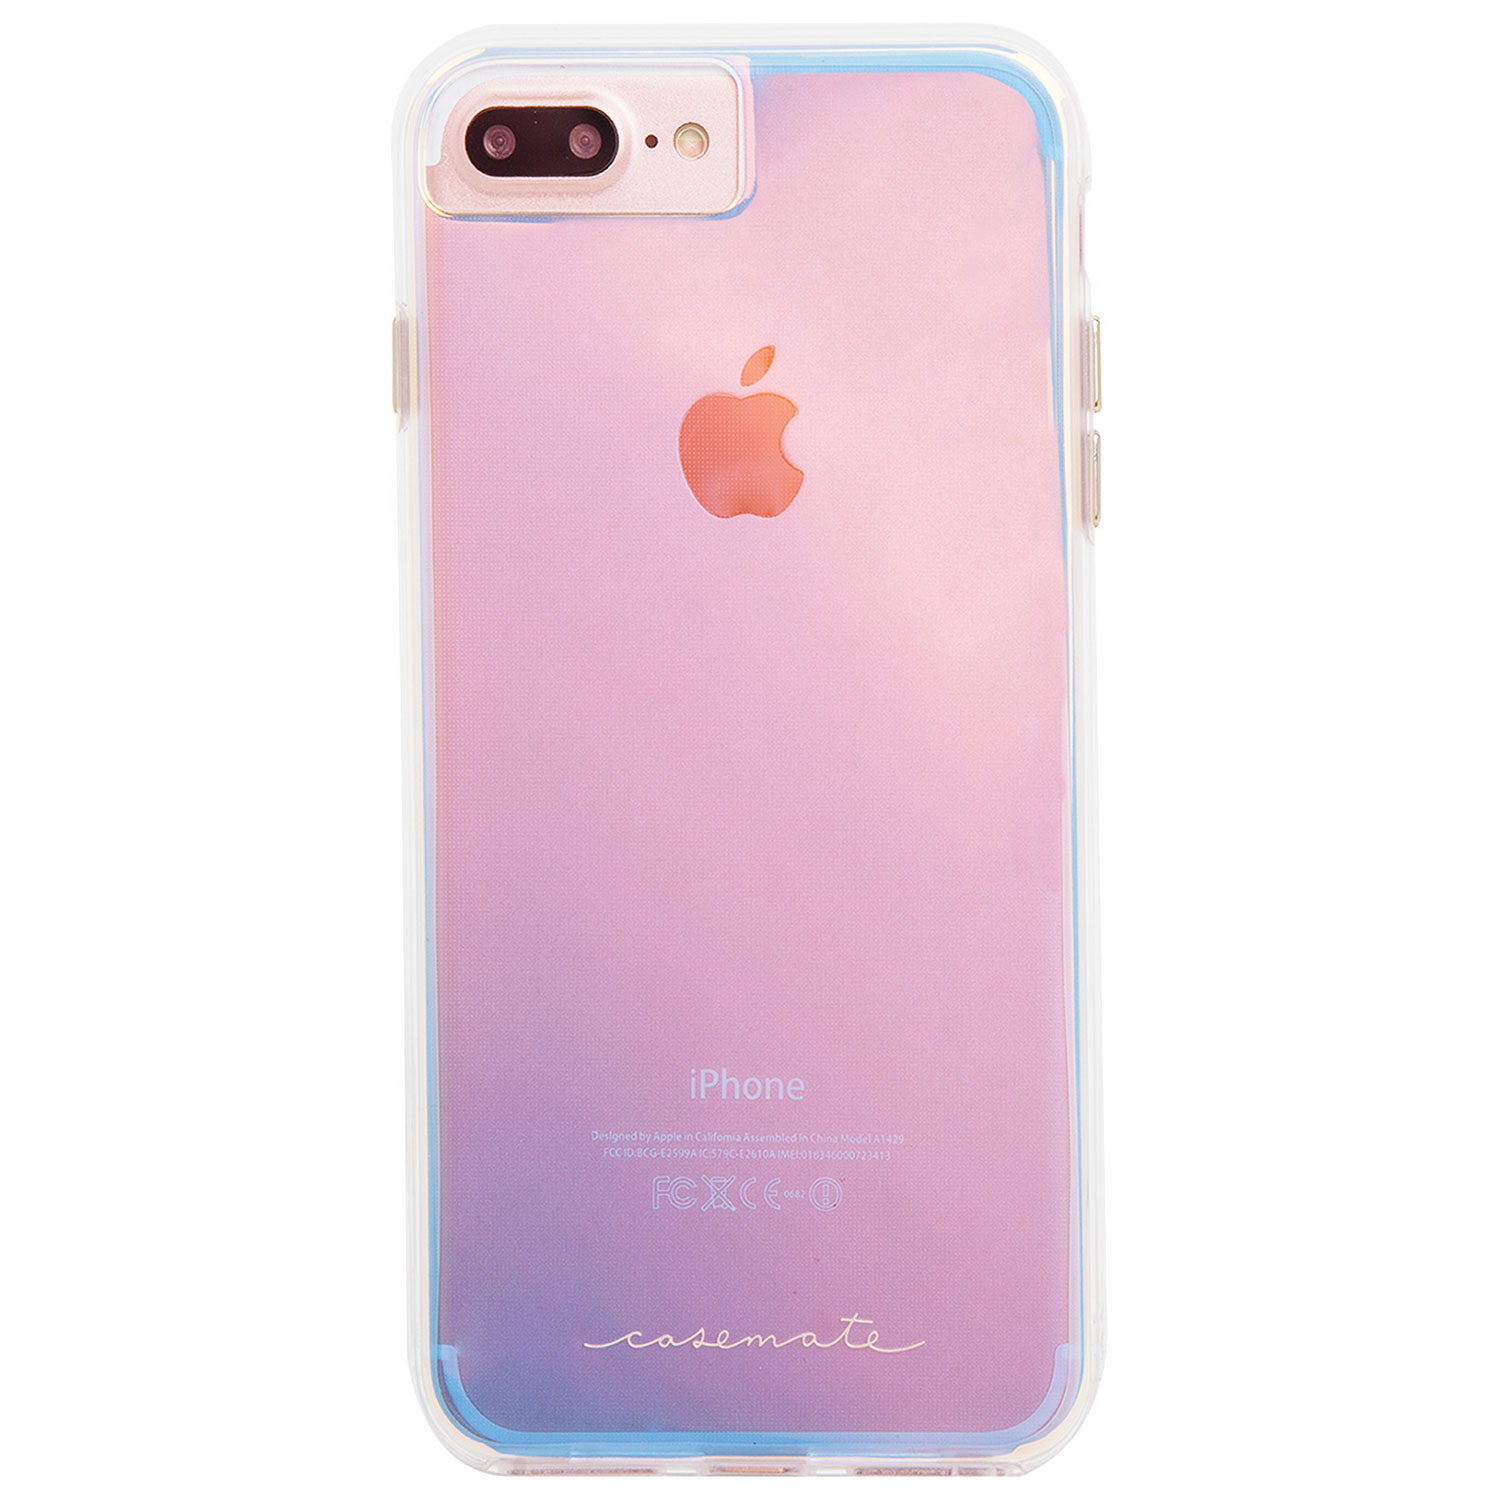 iphone cases 7 plus